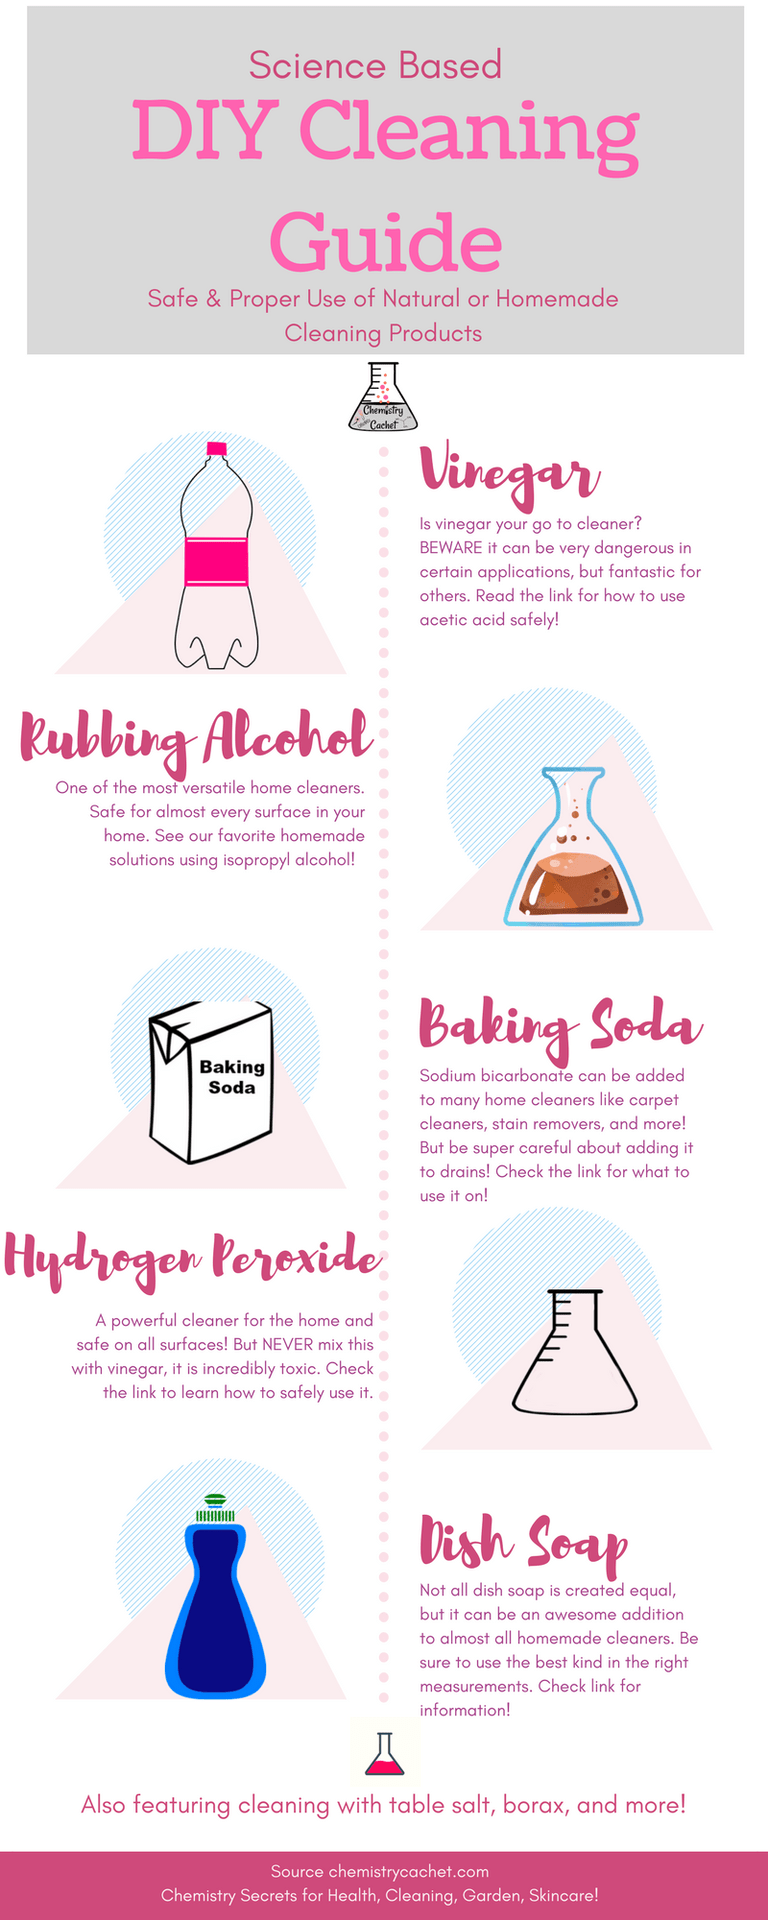 Science Based DIY Cleaning Guide - Safe & Proper Use of